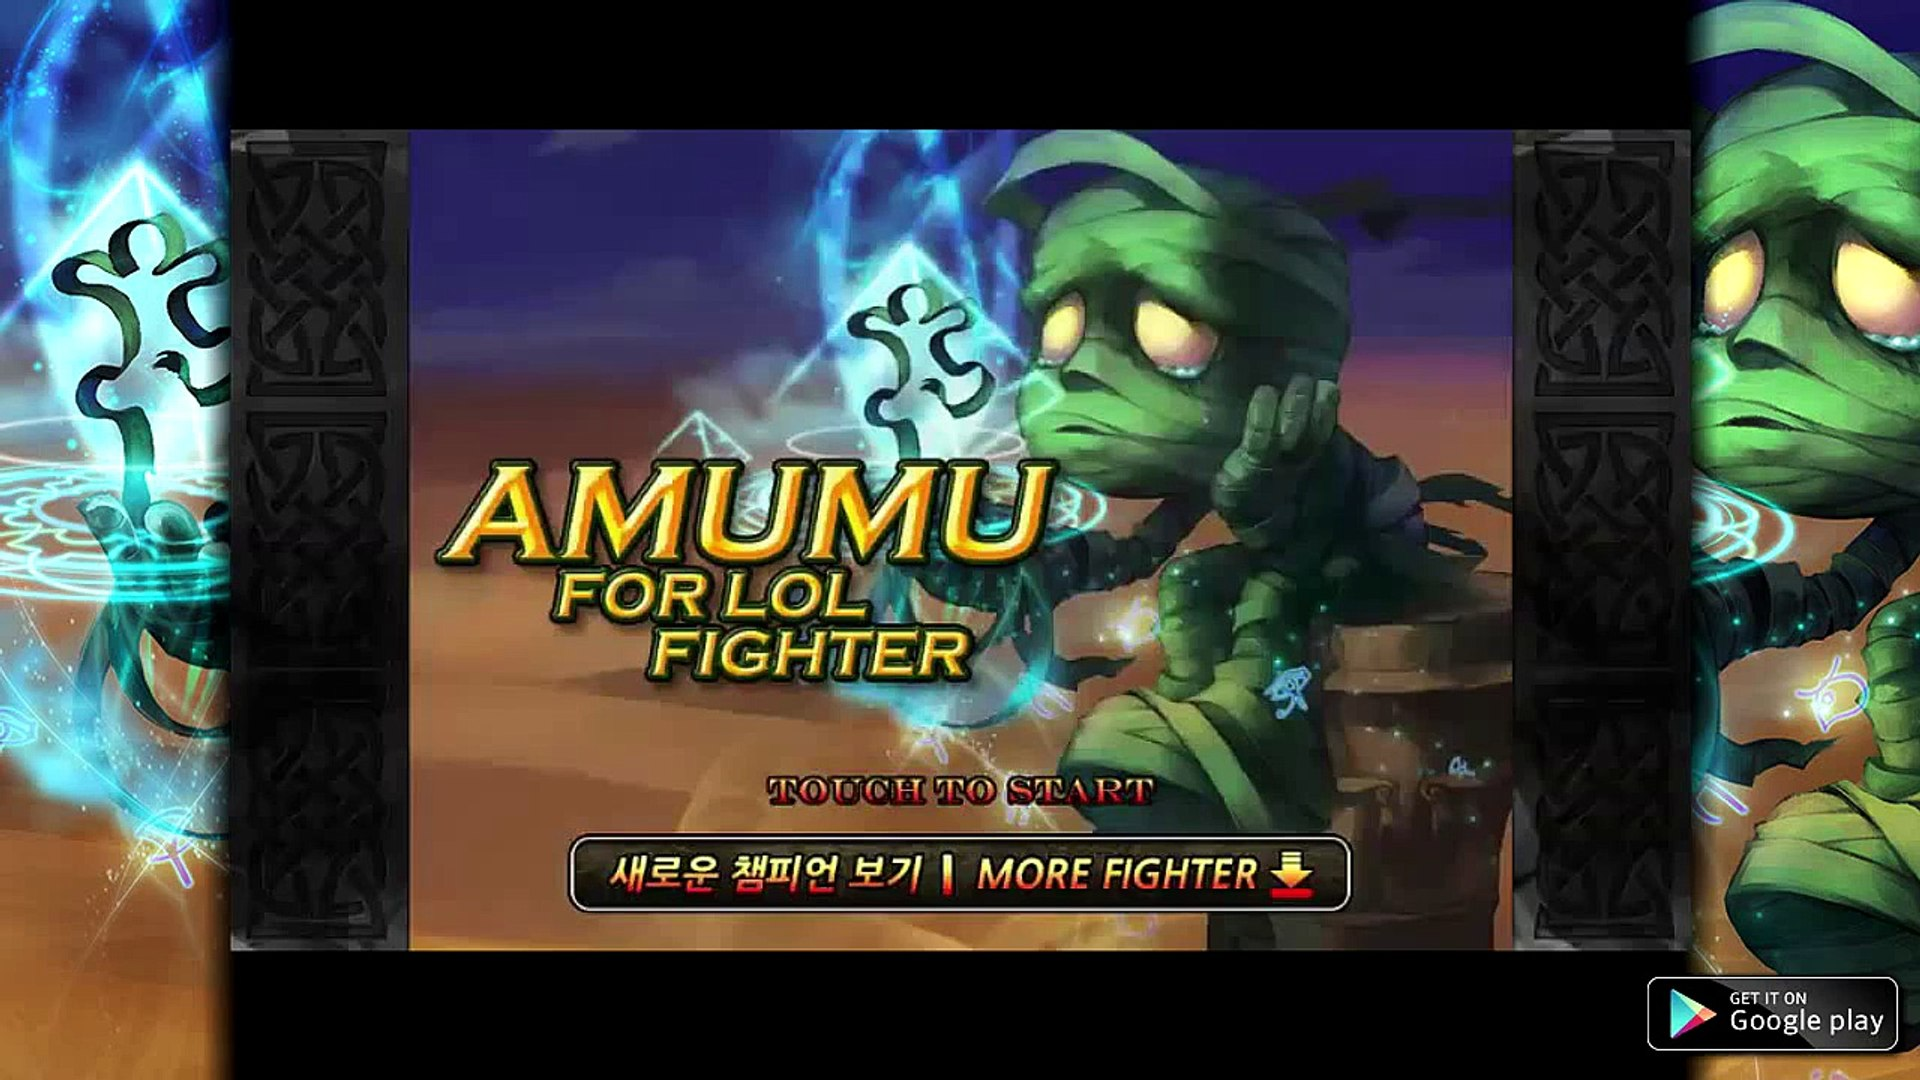 [NEW Releases][Google Play] Amumu LOL Fighter Play Review!